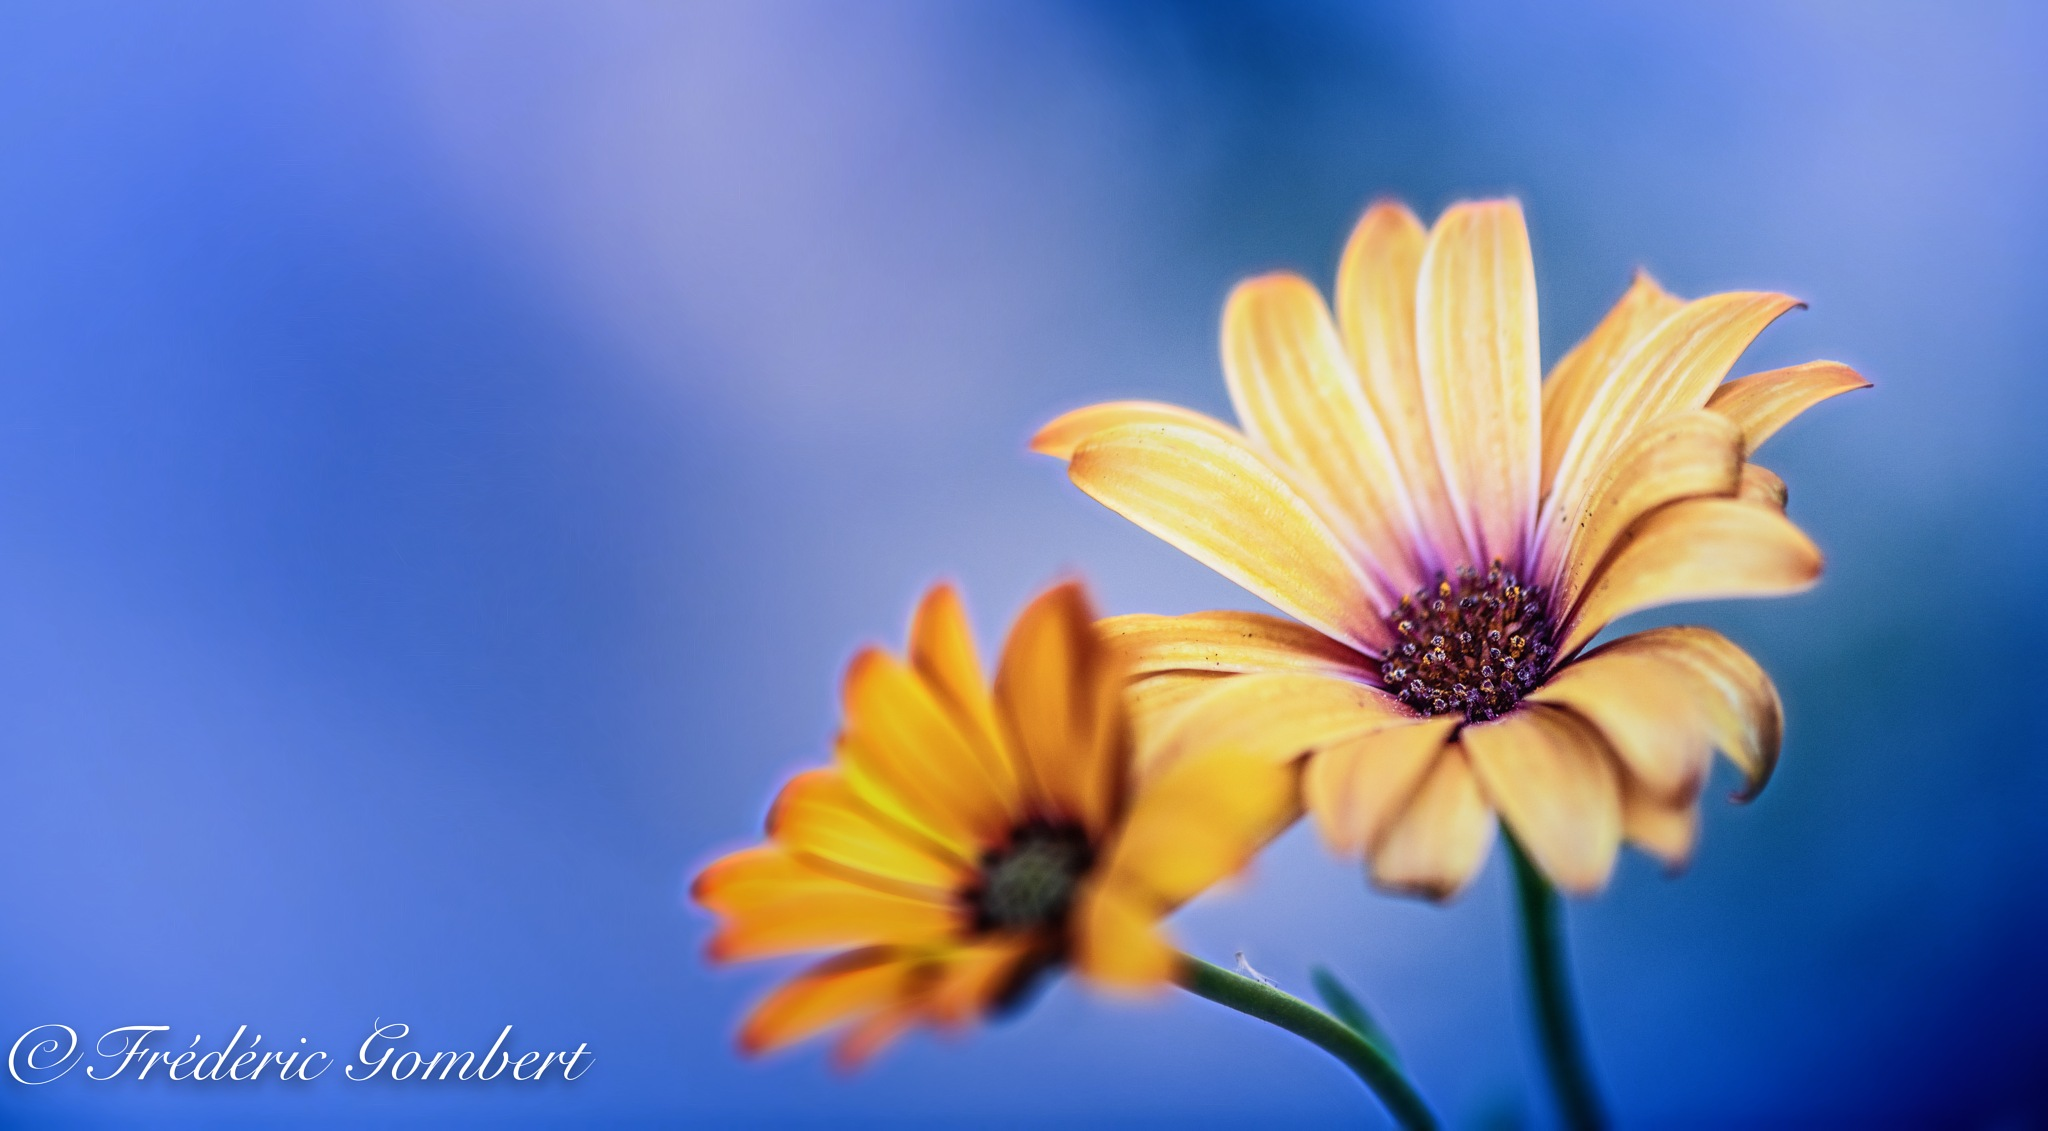 Sisters in Autumn by Frederic Gombert